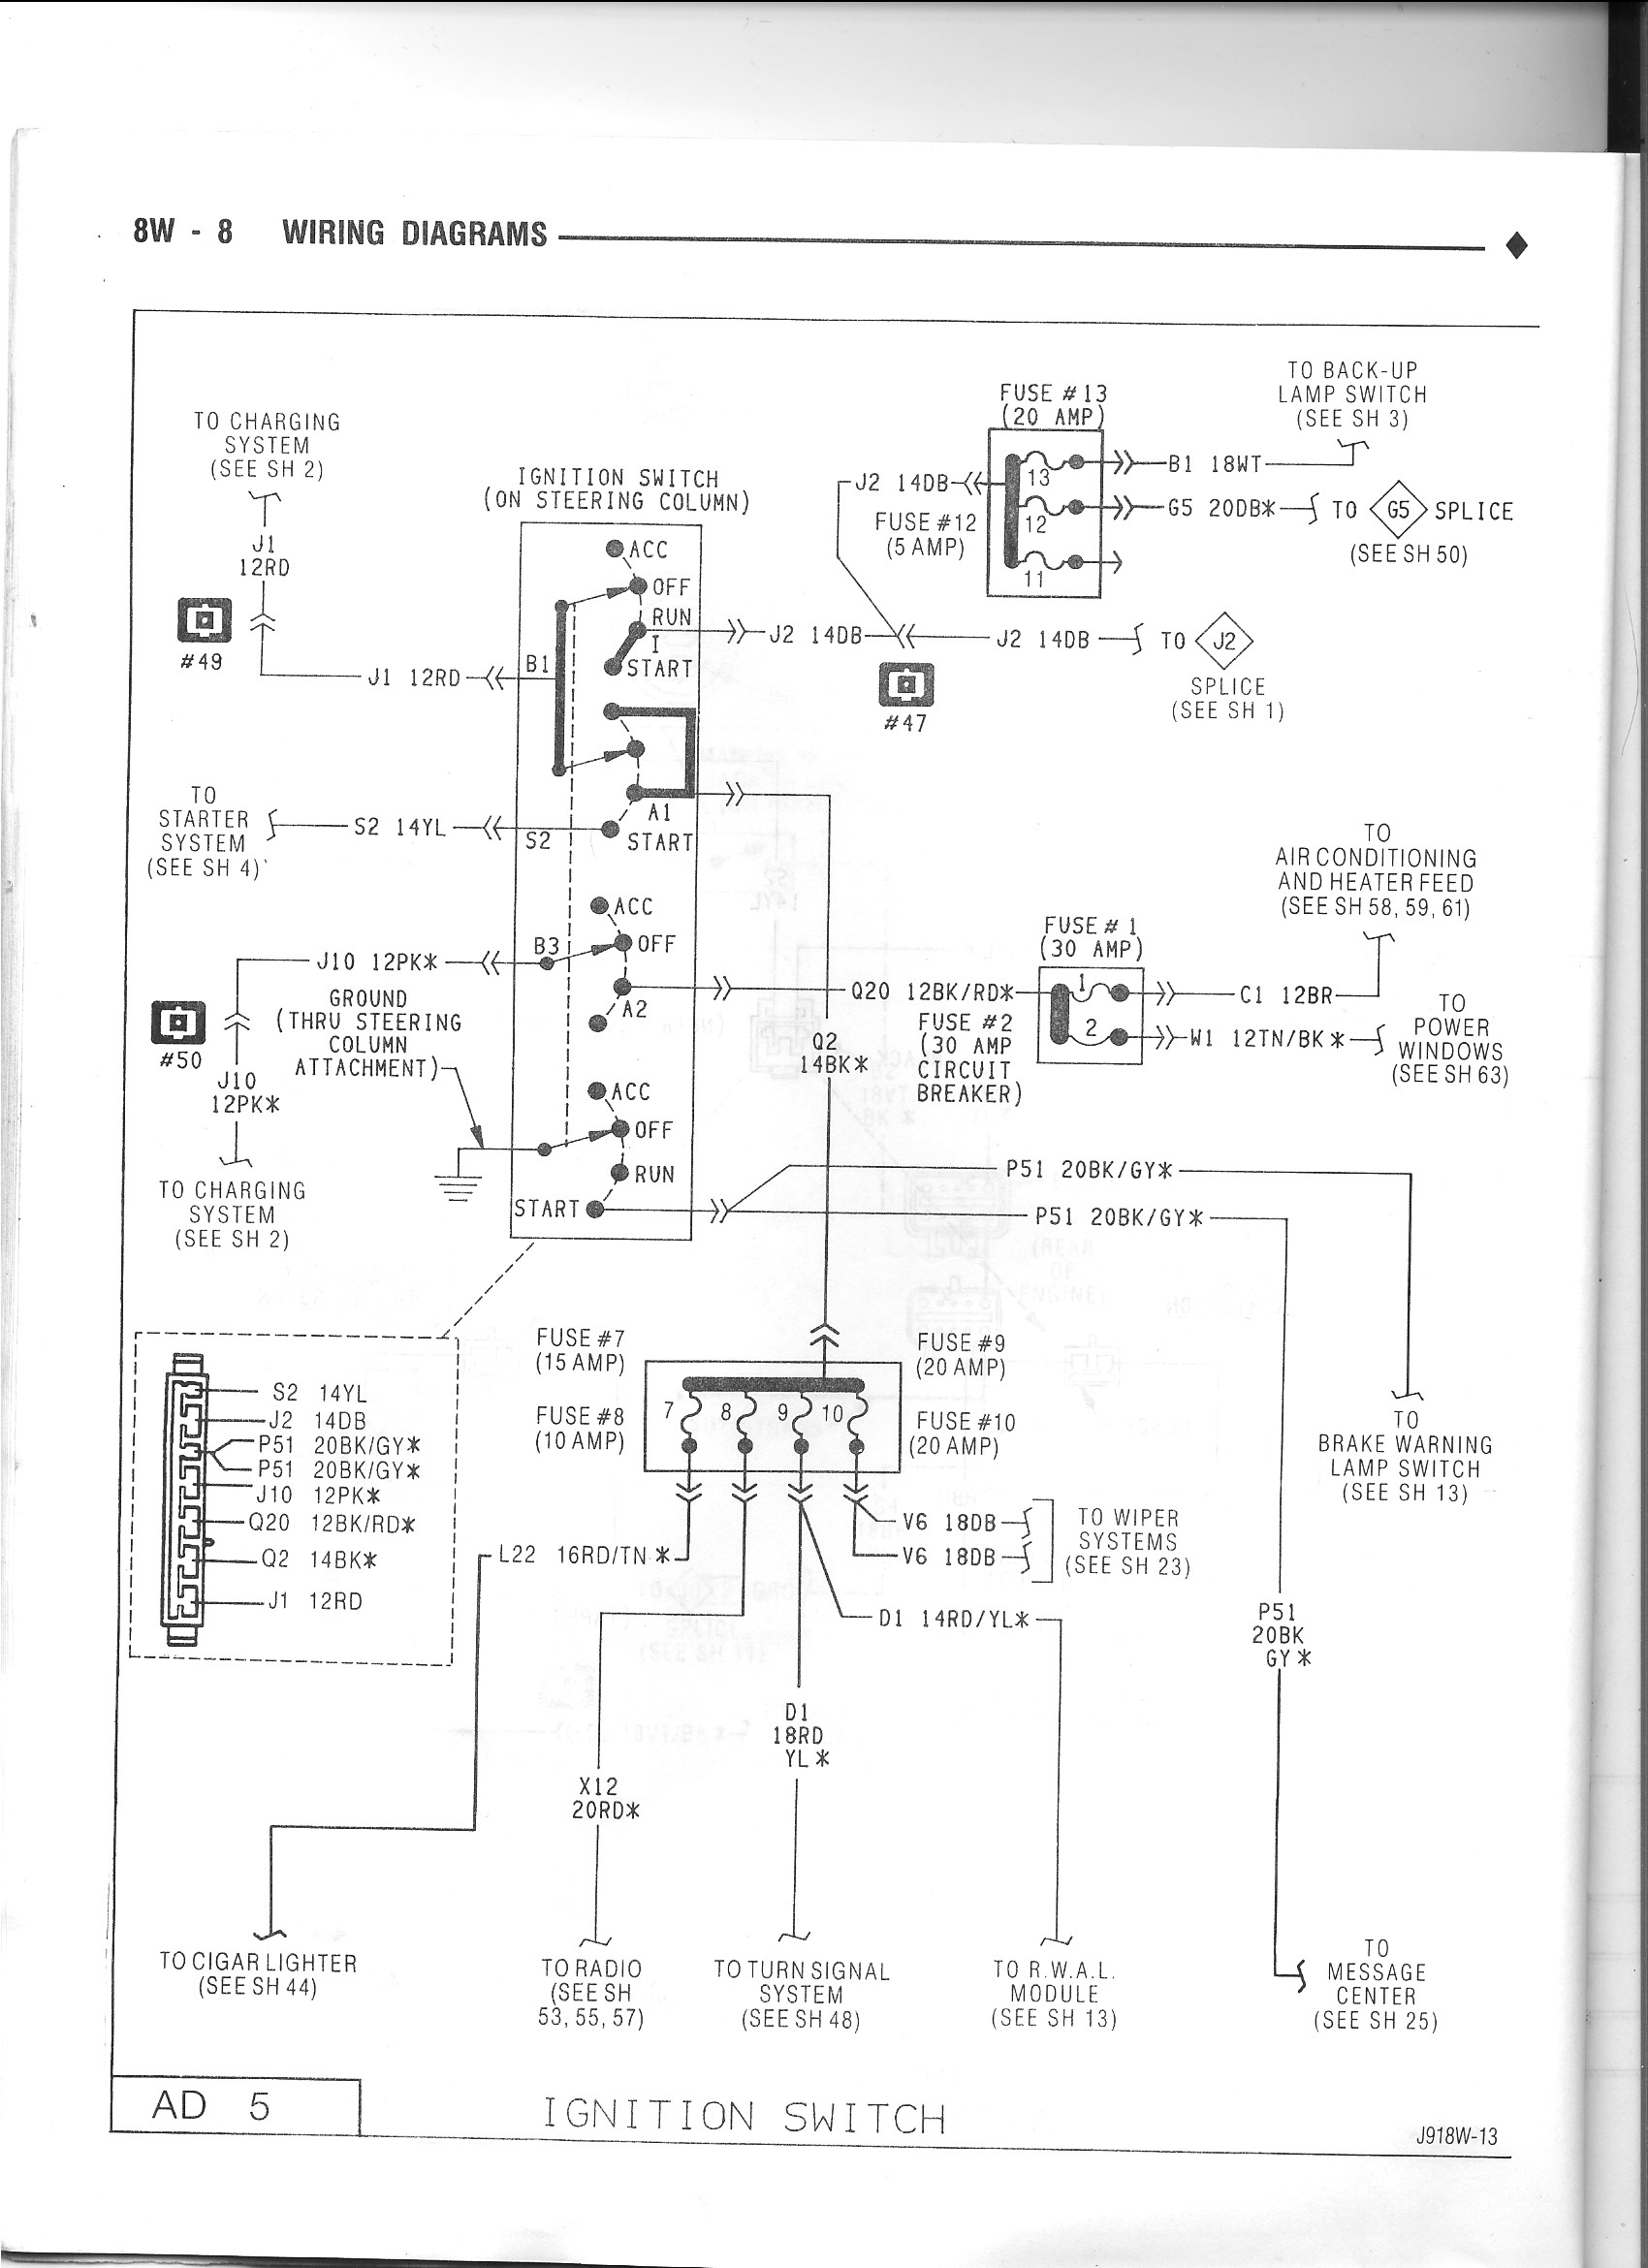 1991 cummins fuse diagram 1991 suburban fuse diagram no power windows and heat - dodge diesel - diesel truck ...